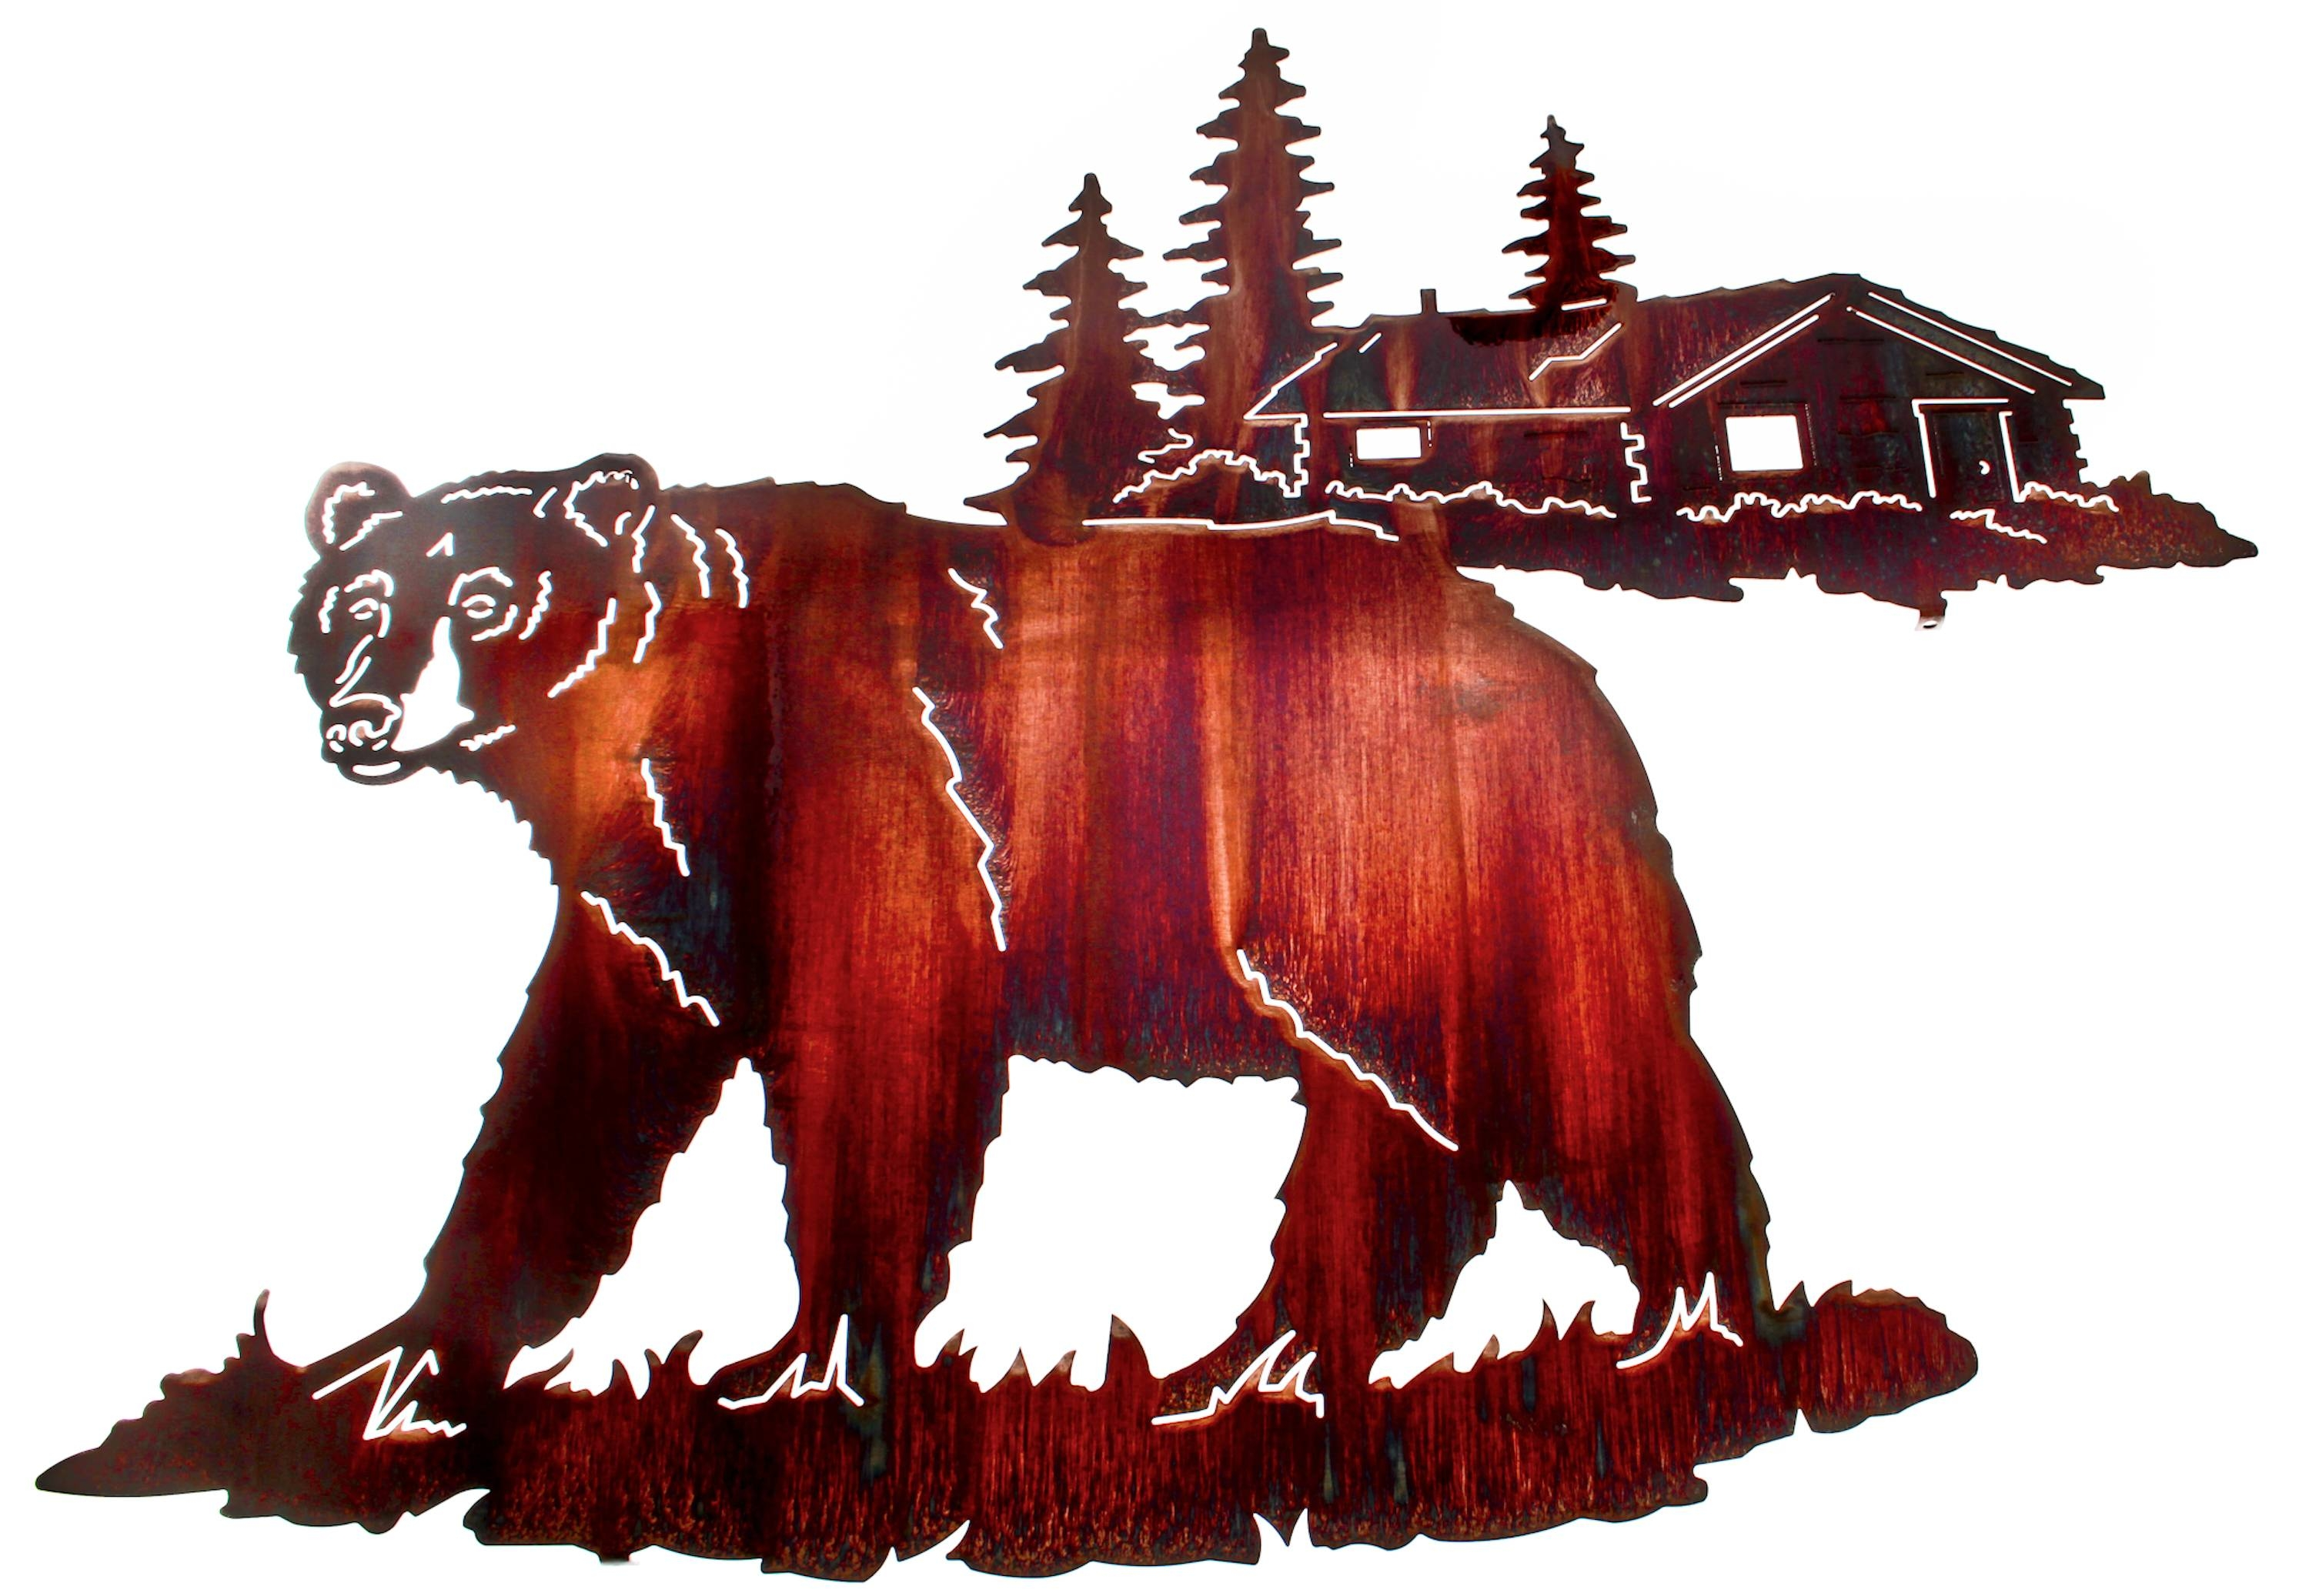 Bear Wall Art, Bear Wall Hangings, Metal Wall Sculptures Throughout Most Recently Released Lazart Metal Art (View 15 of 30)